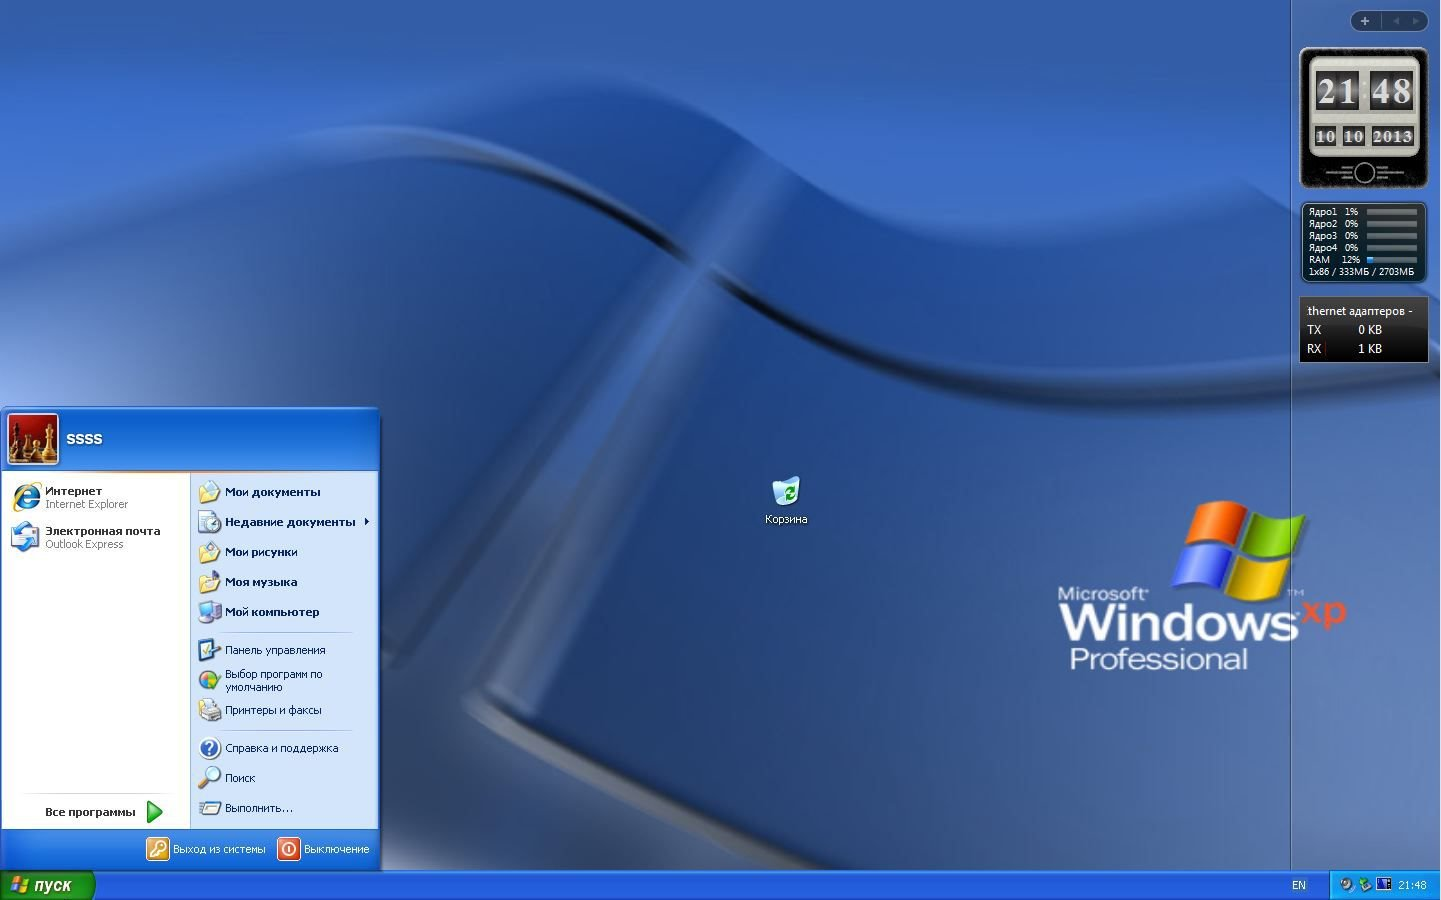 Windows xp pro sp3 integrated january 2015 by maherz + best themes.